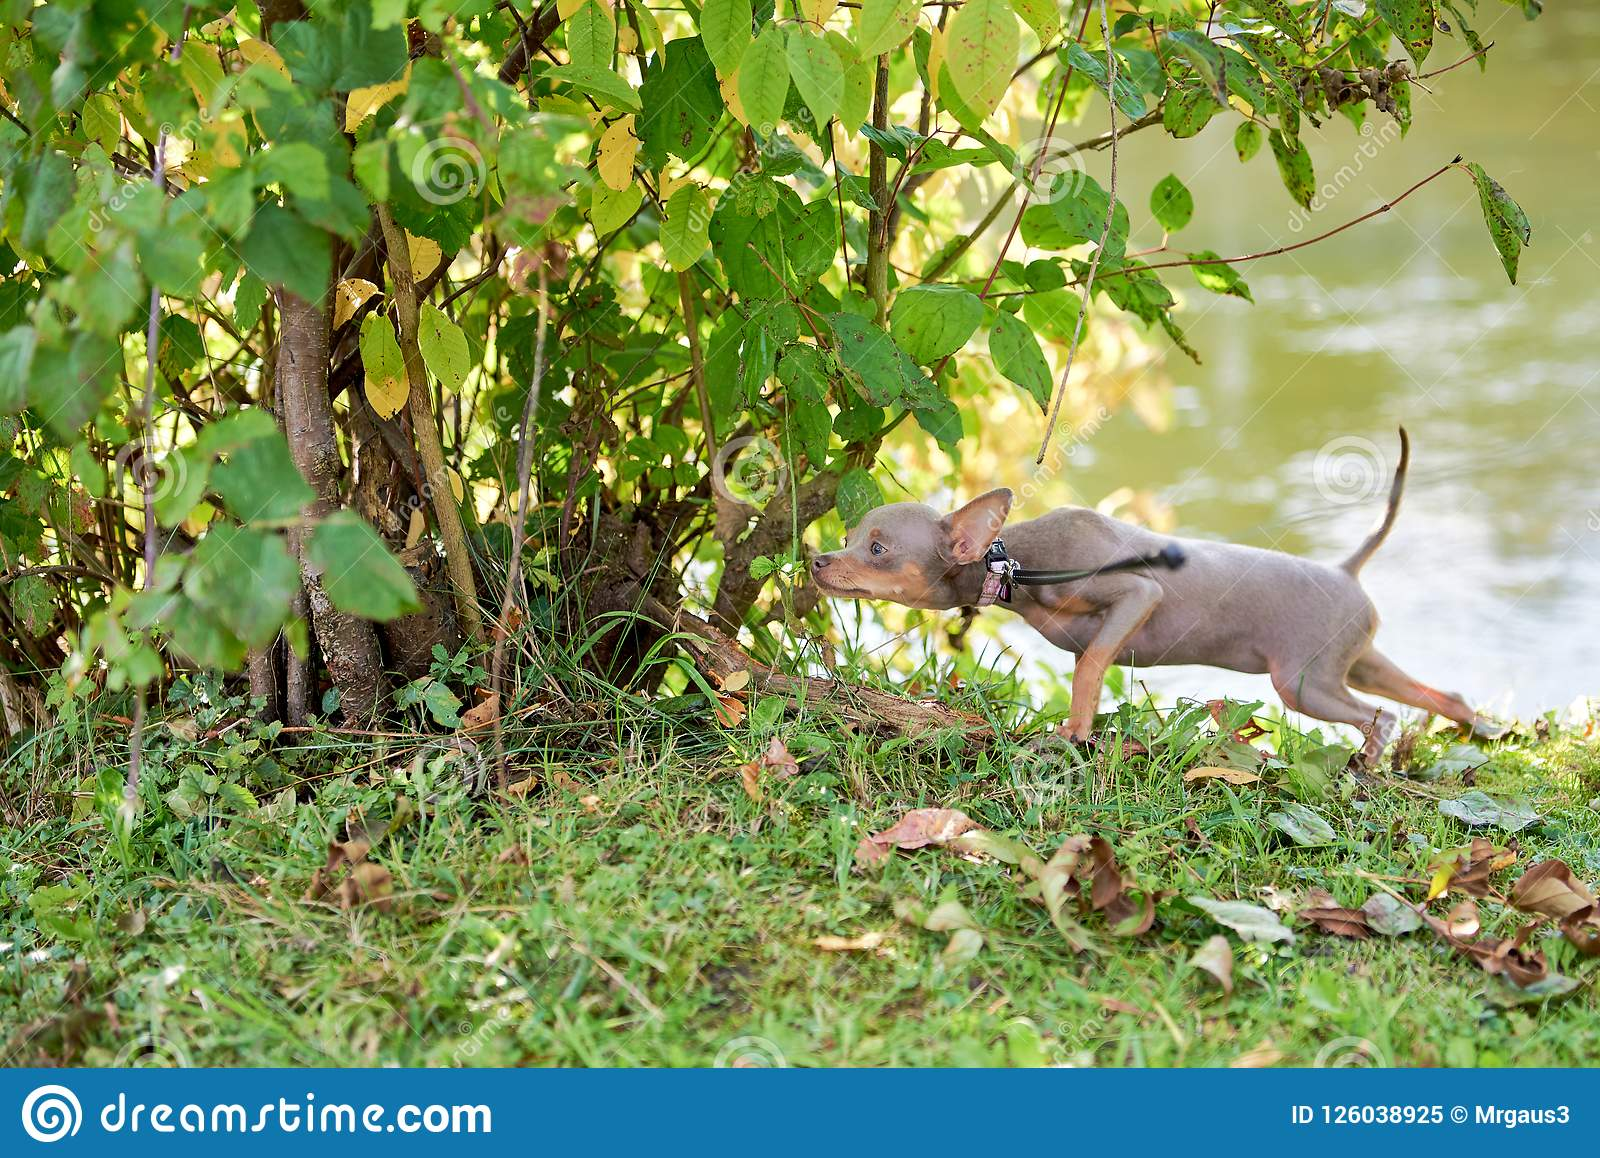 The dog sniffs and sneaks in the bushes. Russian Toy Terrier, Russkiy Toy